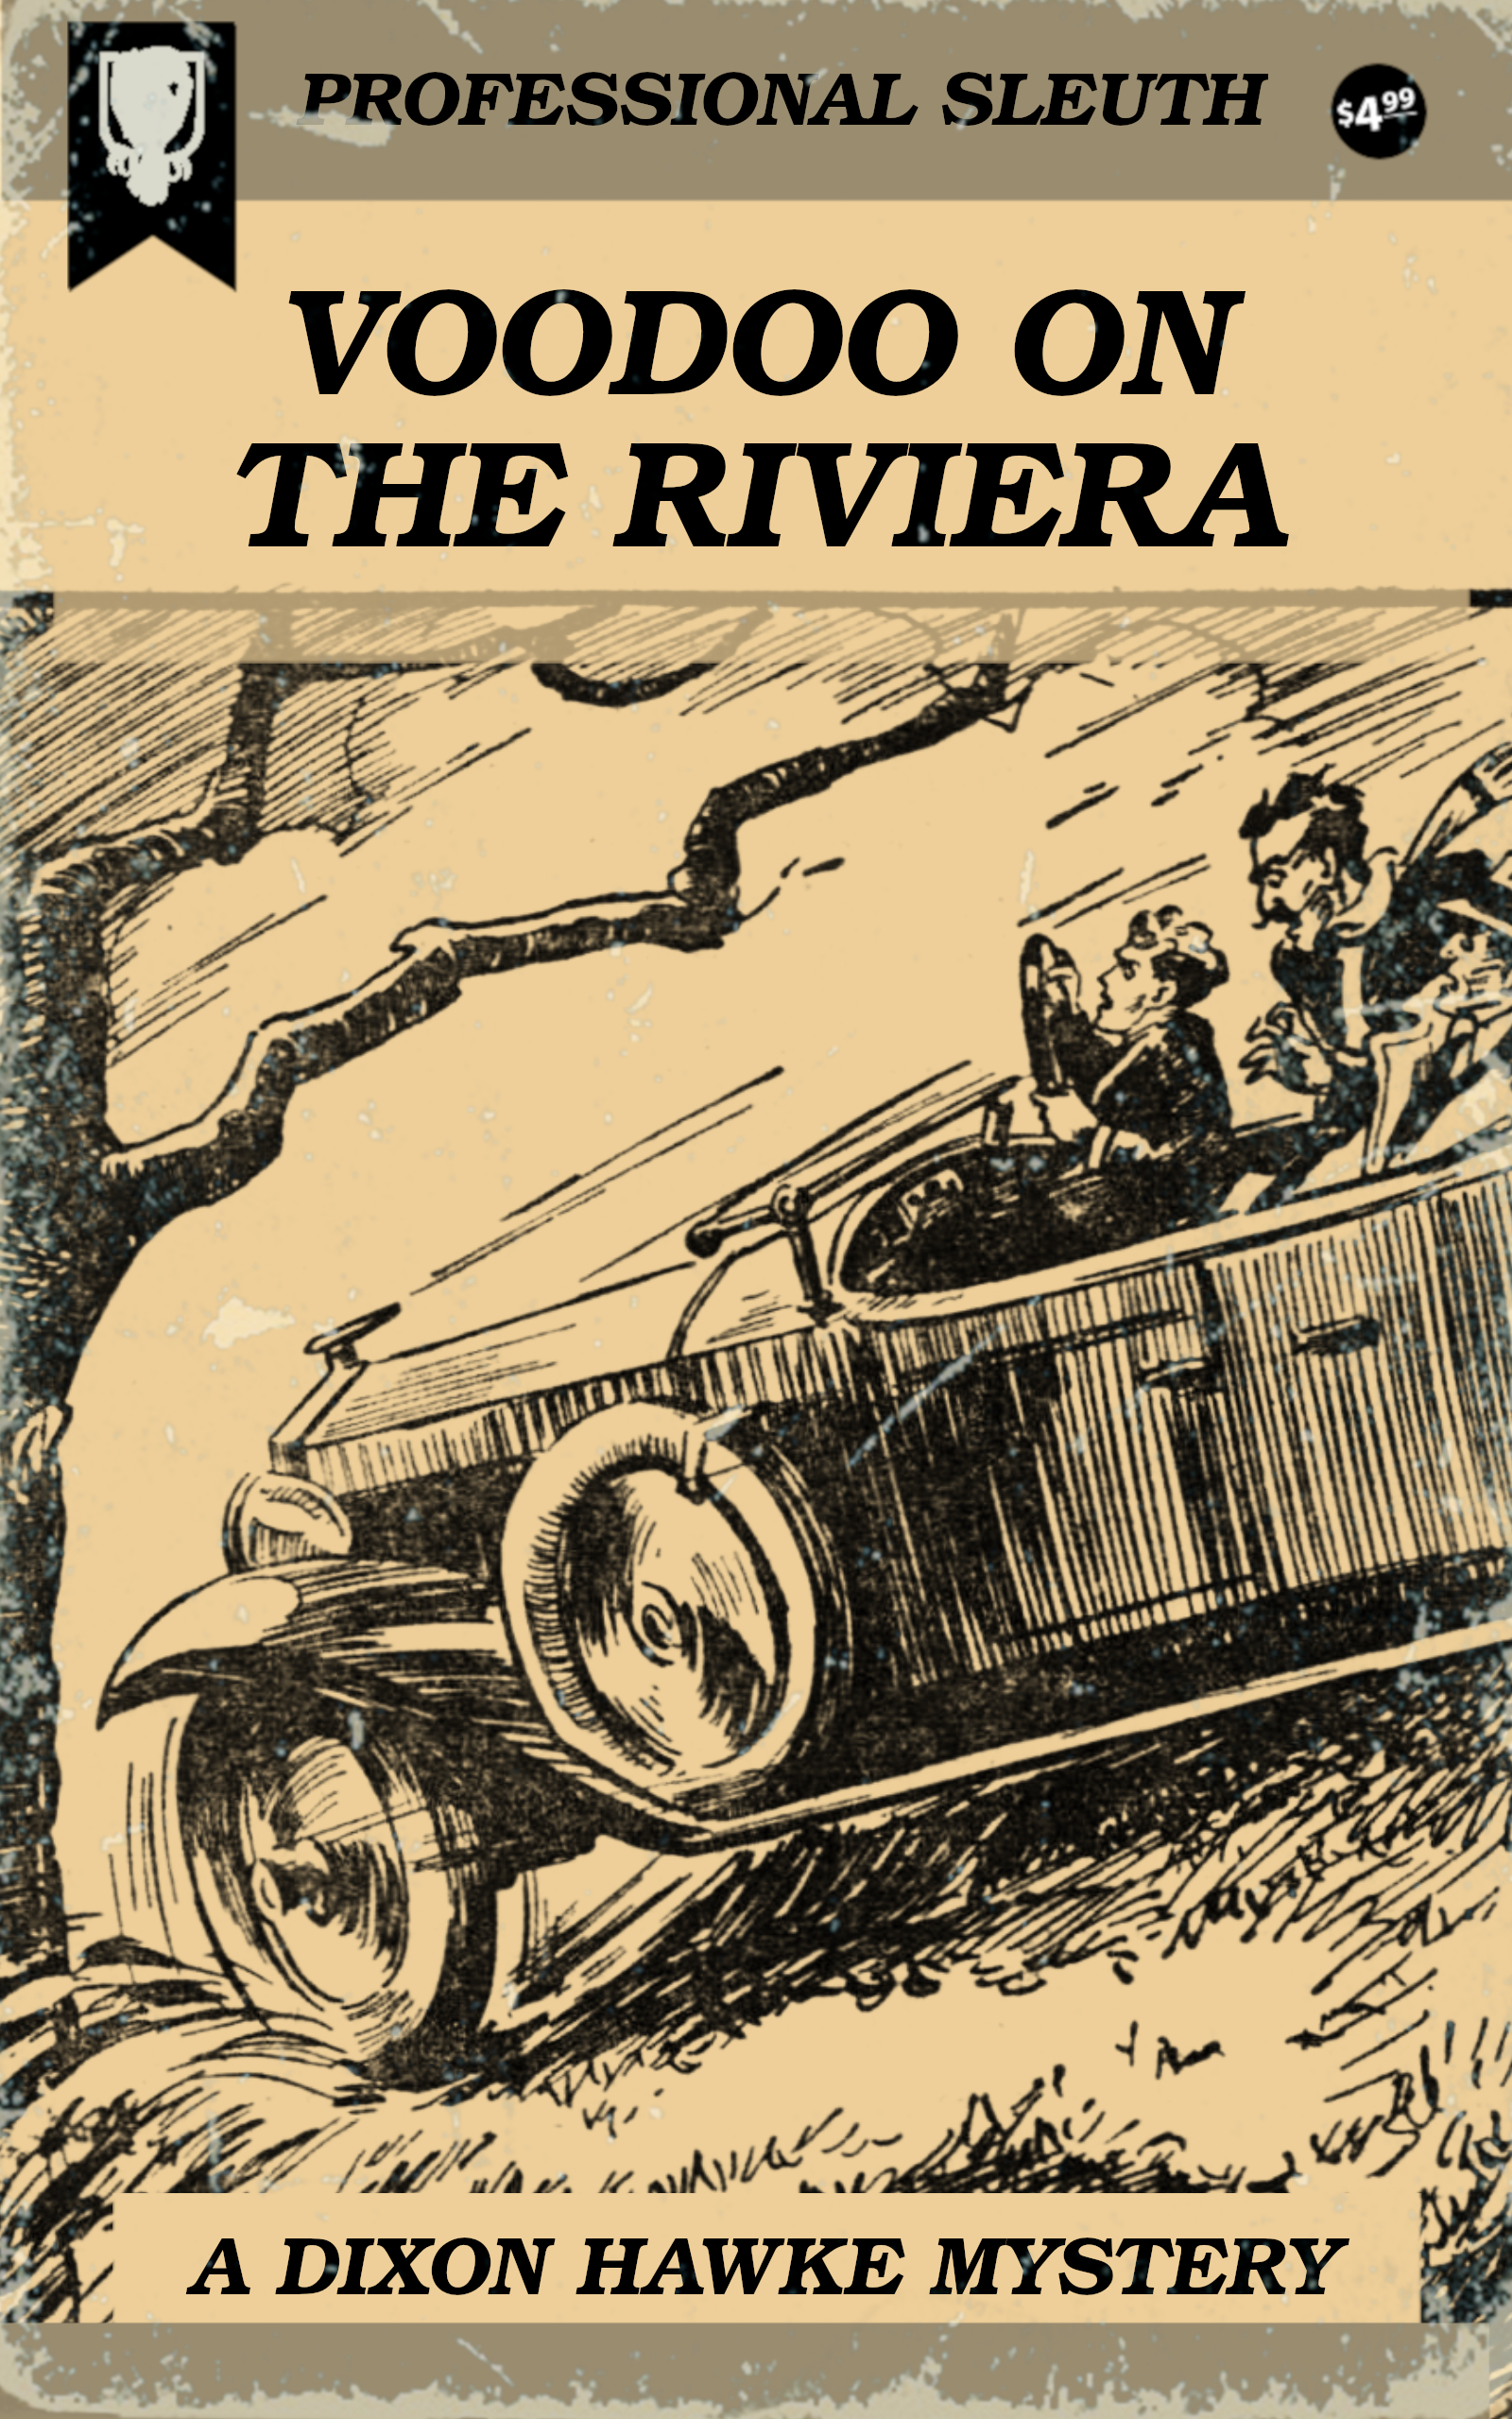 Voodoo On the Riviera, a Dixon Hawke Mystery Novelette